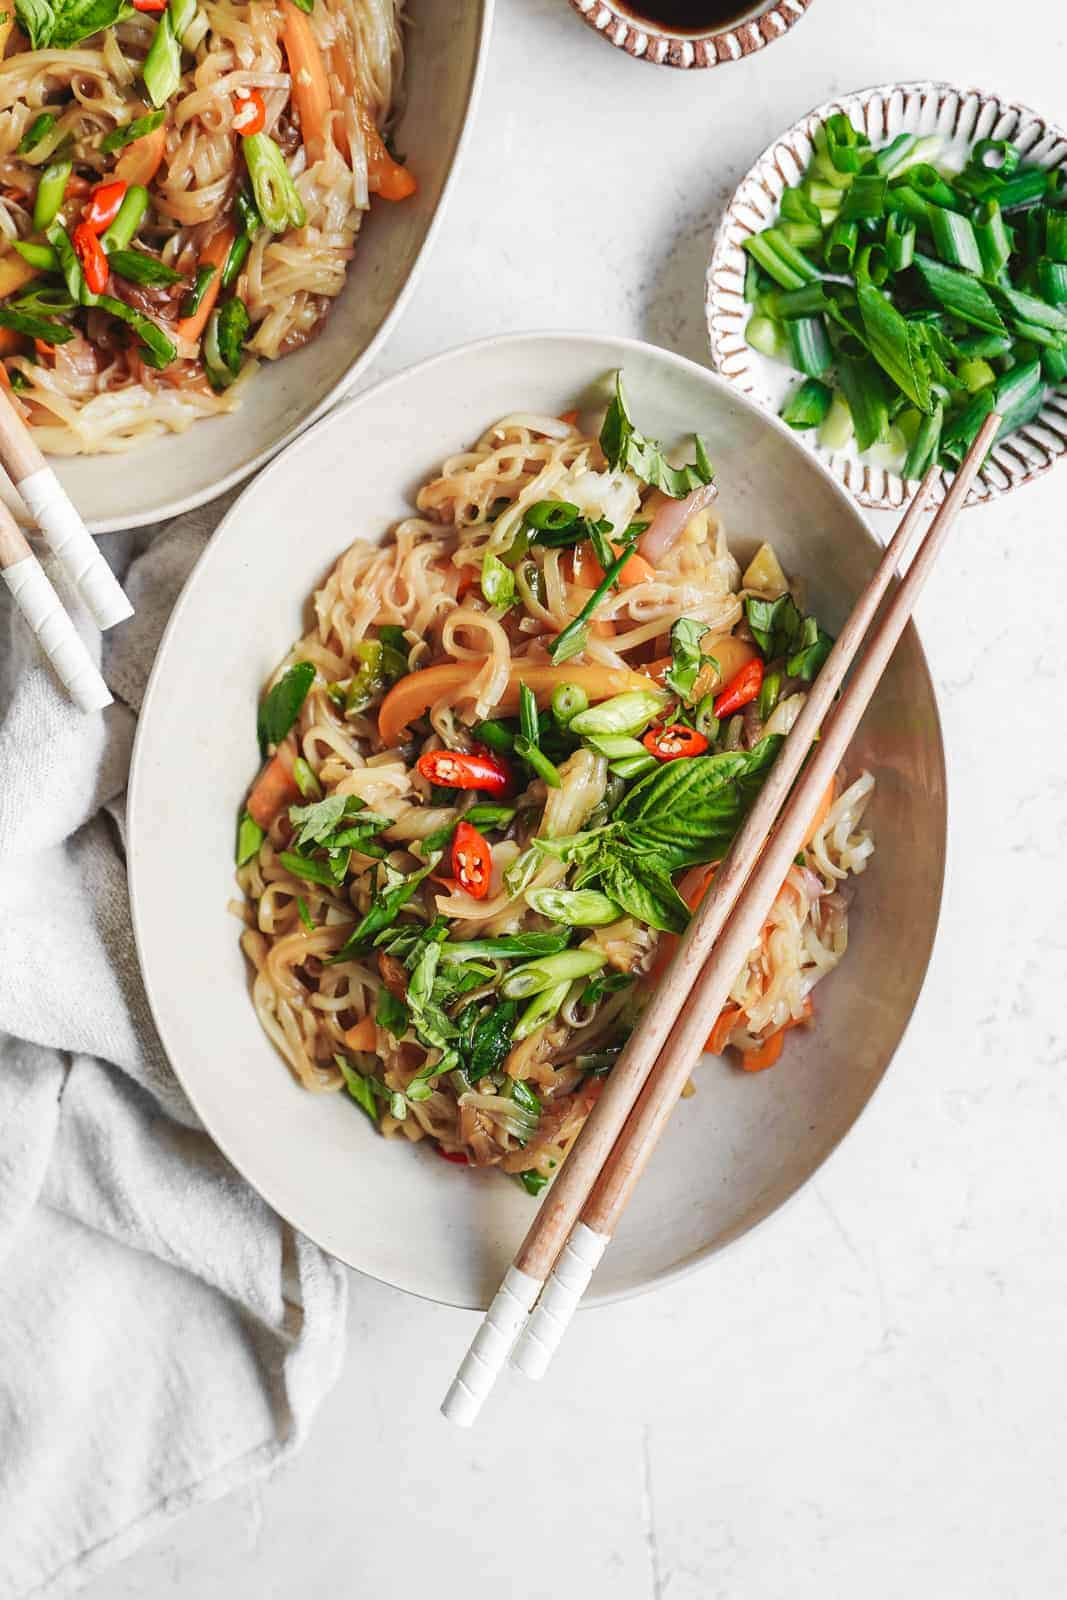 Easy 15-minute drunken noodles in bowl with chopsticks ready to eat.